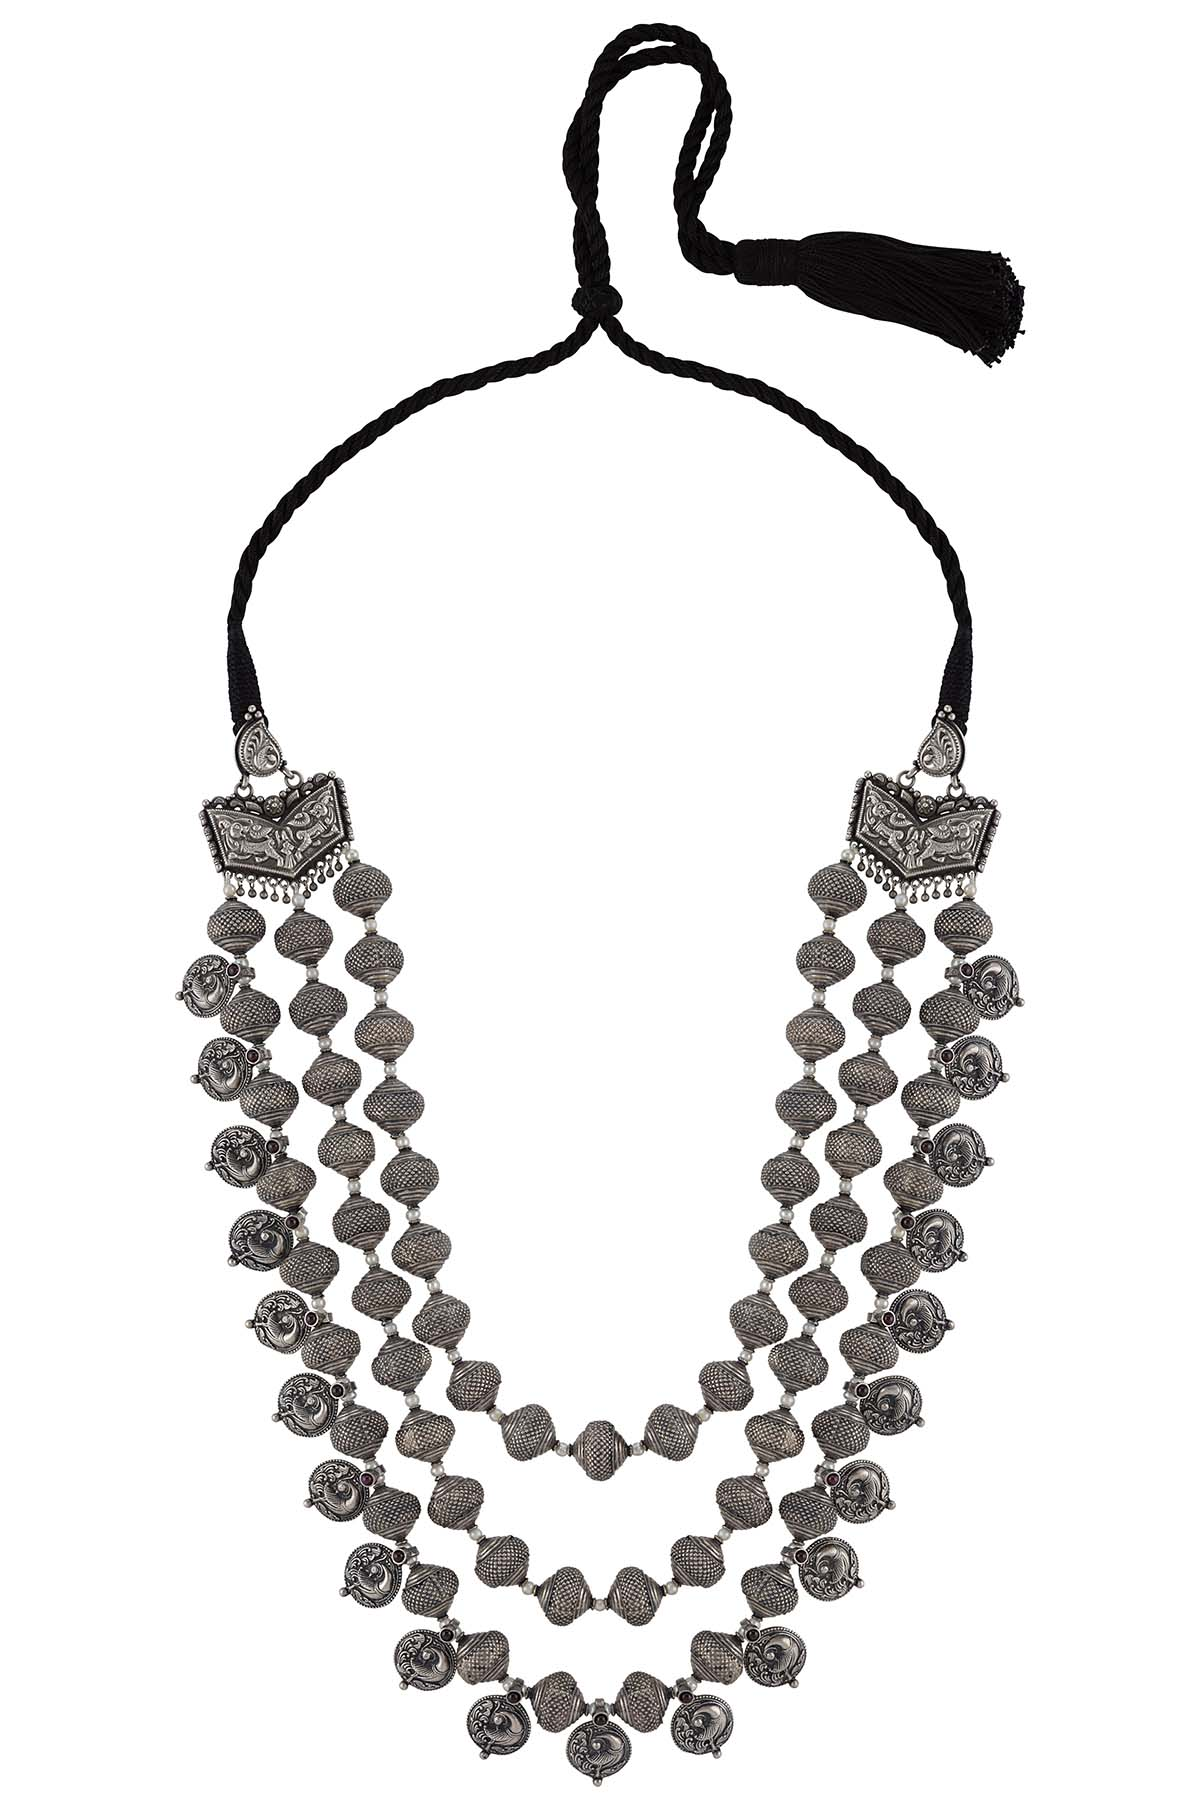 Silver Peacock Rawa Textured Bead Thread Necklace